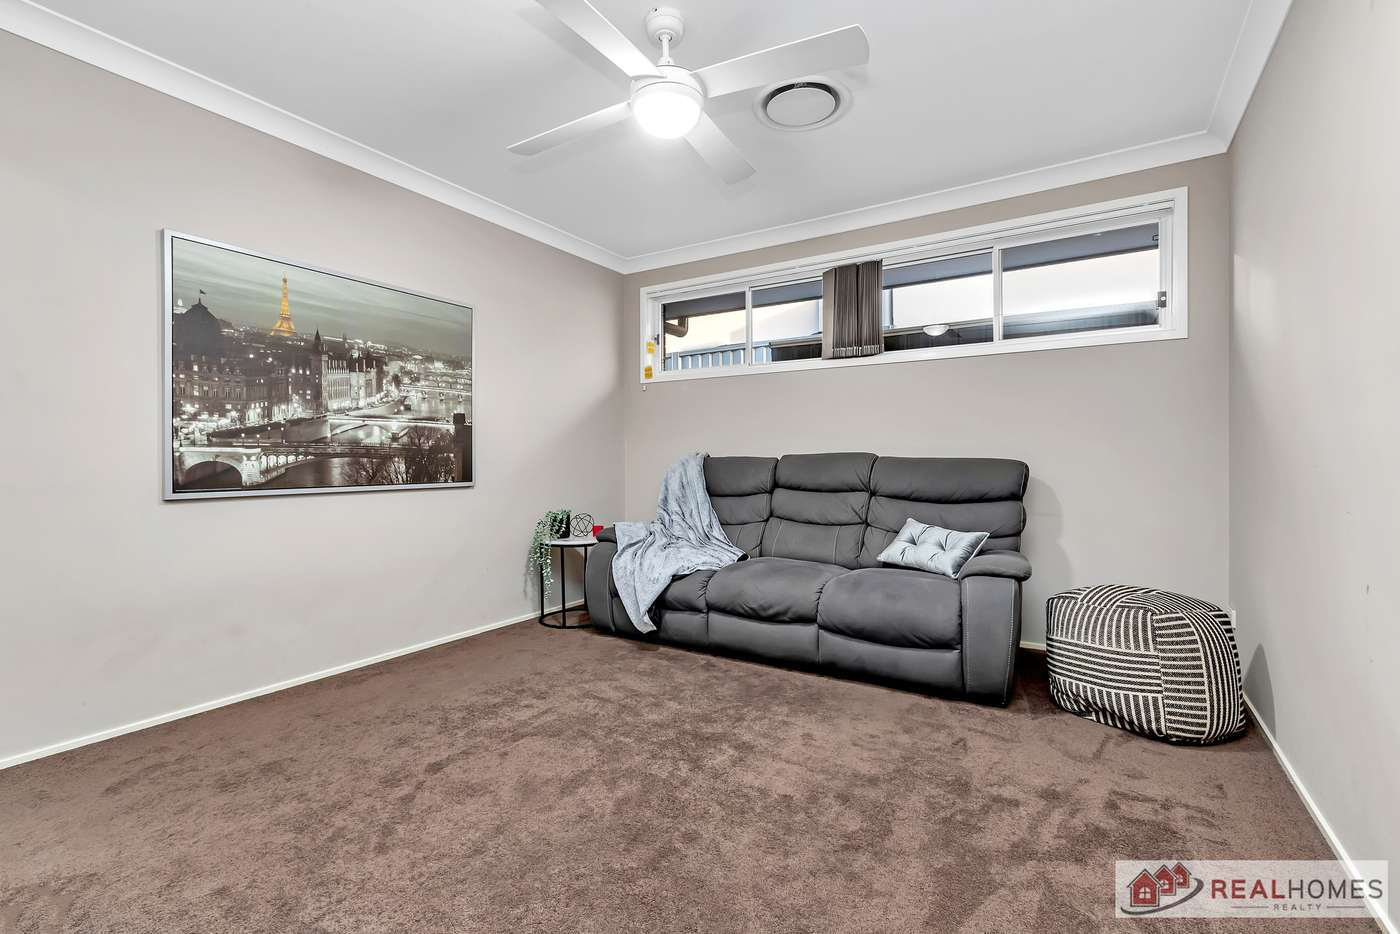 Fifth view of Homely house listing, 10 Guardian Way, Jordan Springs NSW 2747